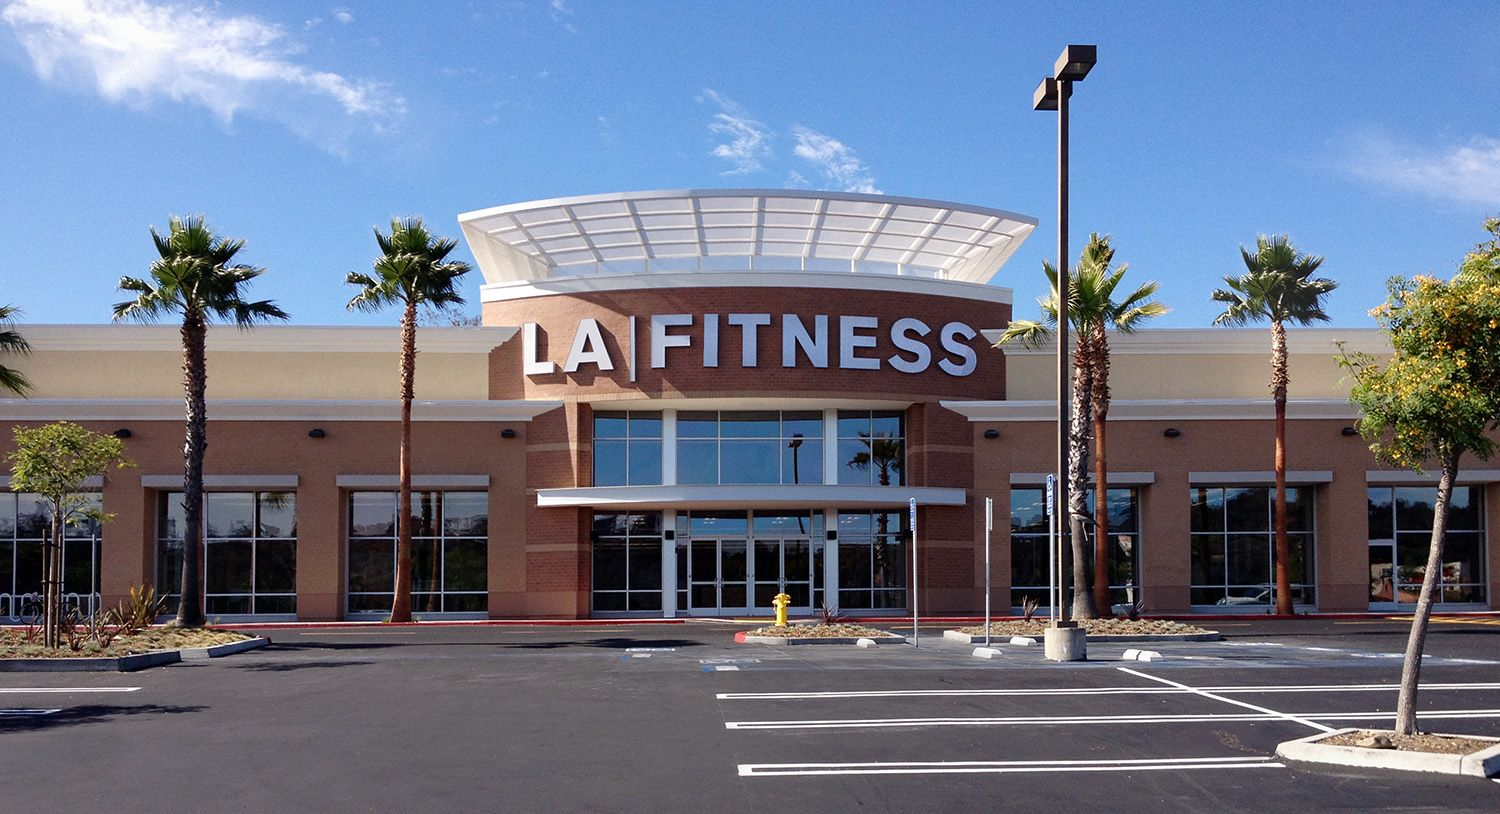 La fitness is located at 2335 vista way oceanside ca